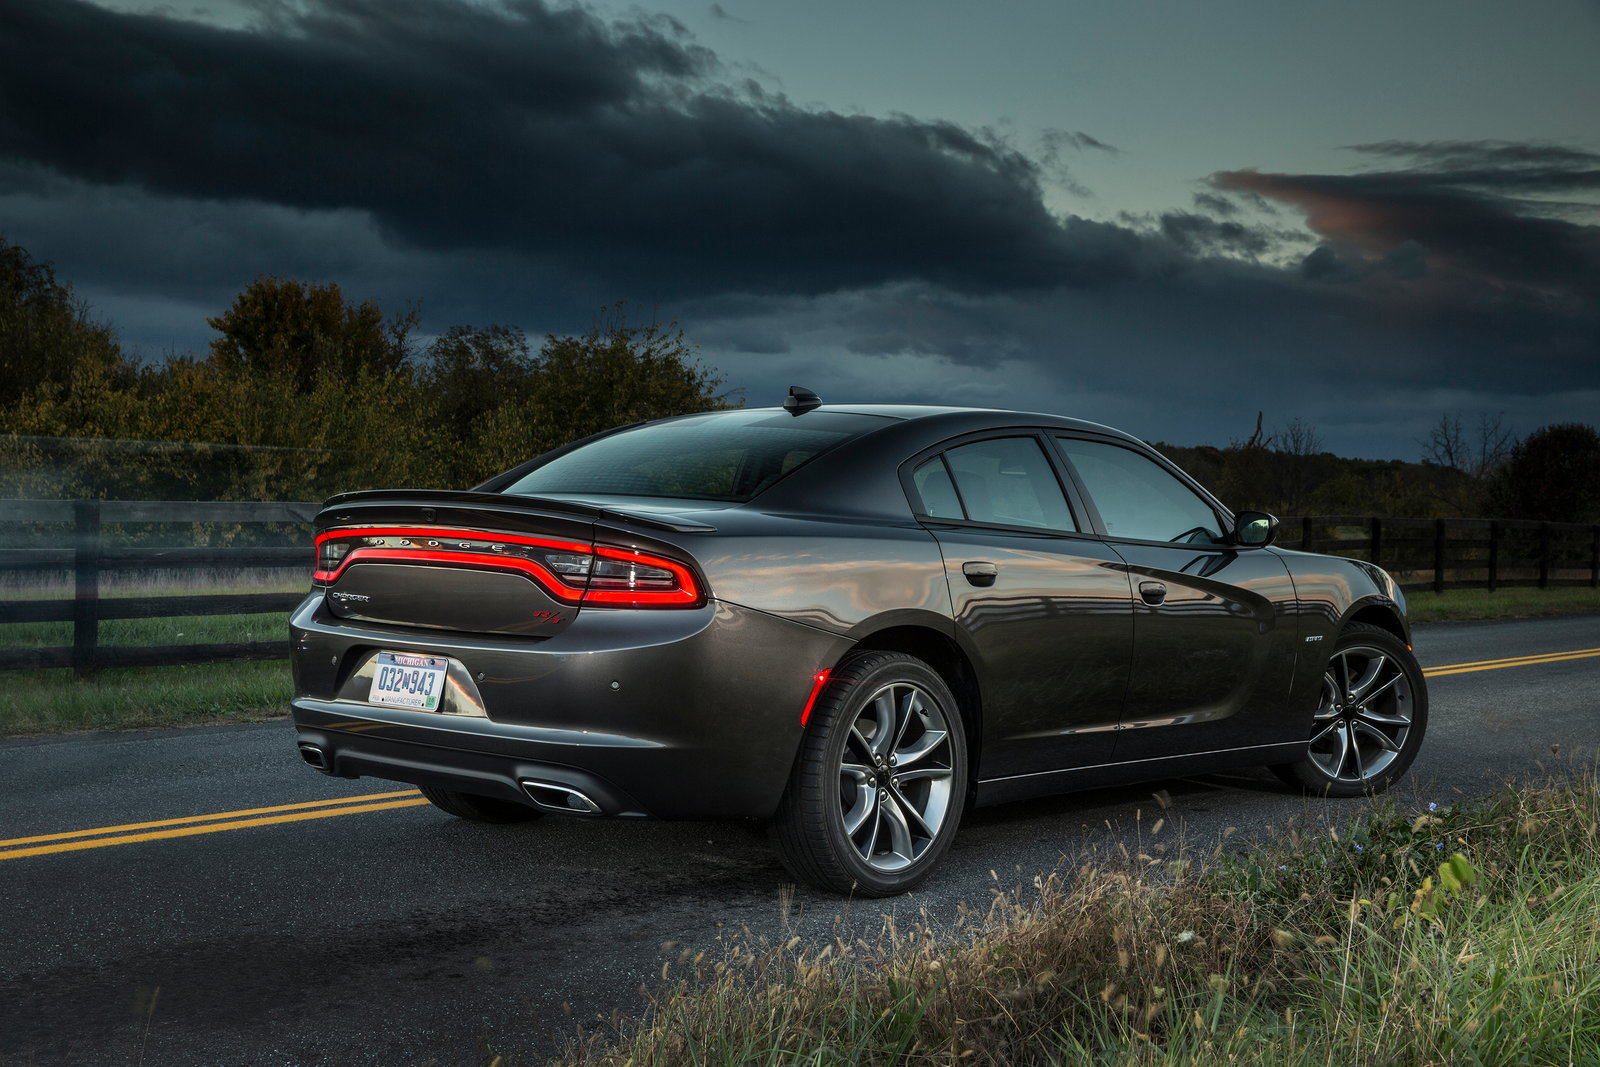 2017 Dodge Charger Deals, Prices, Incentives & Leases ...